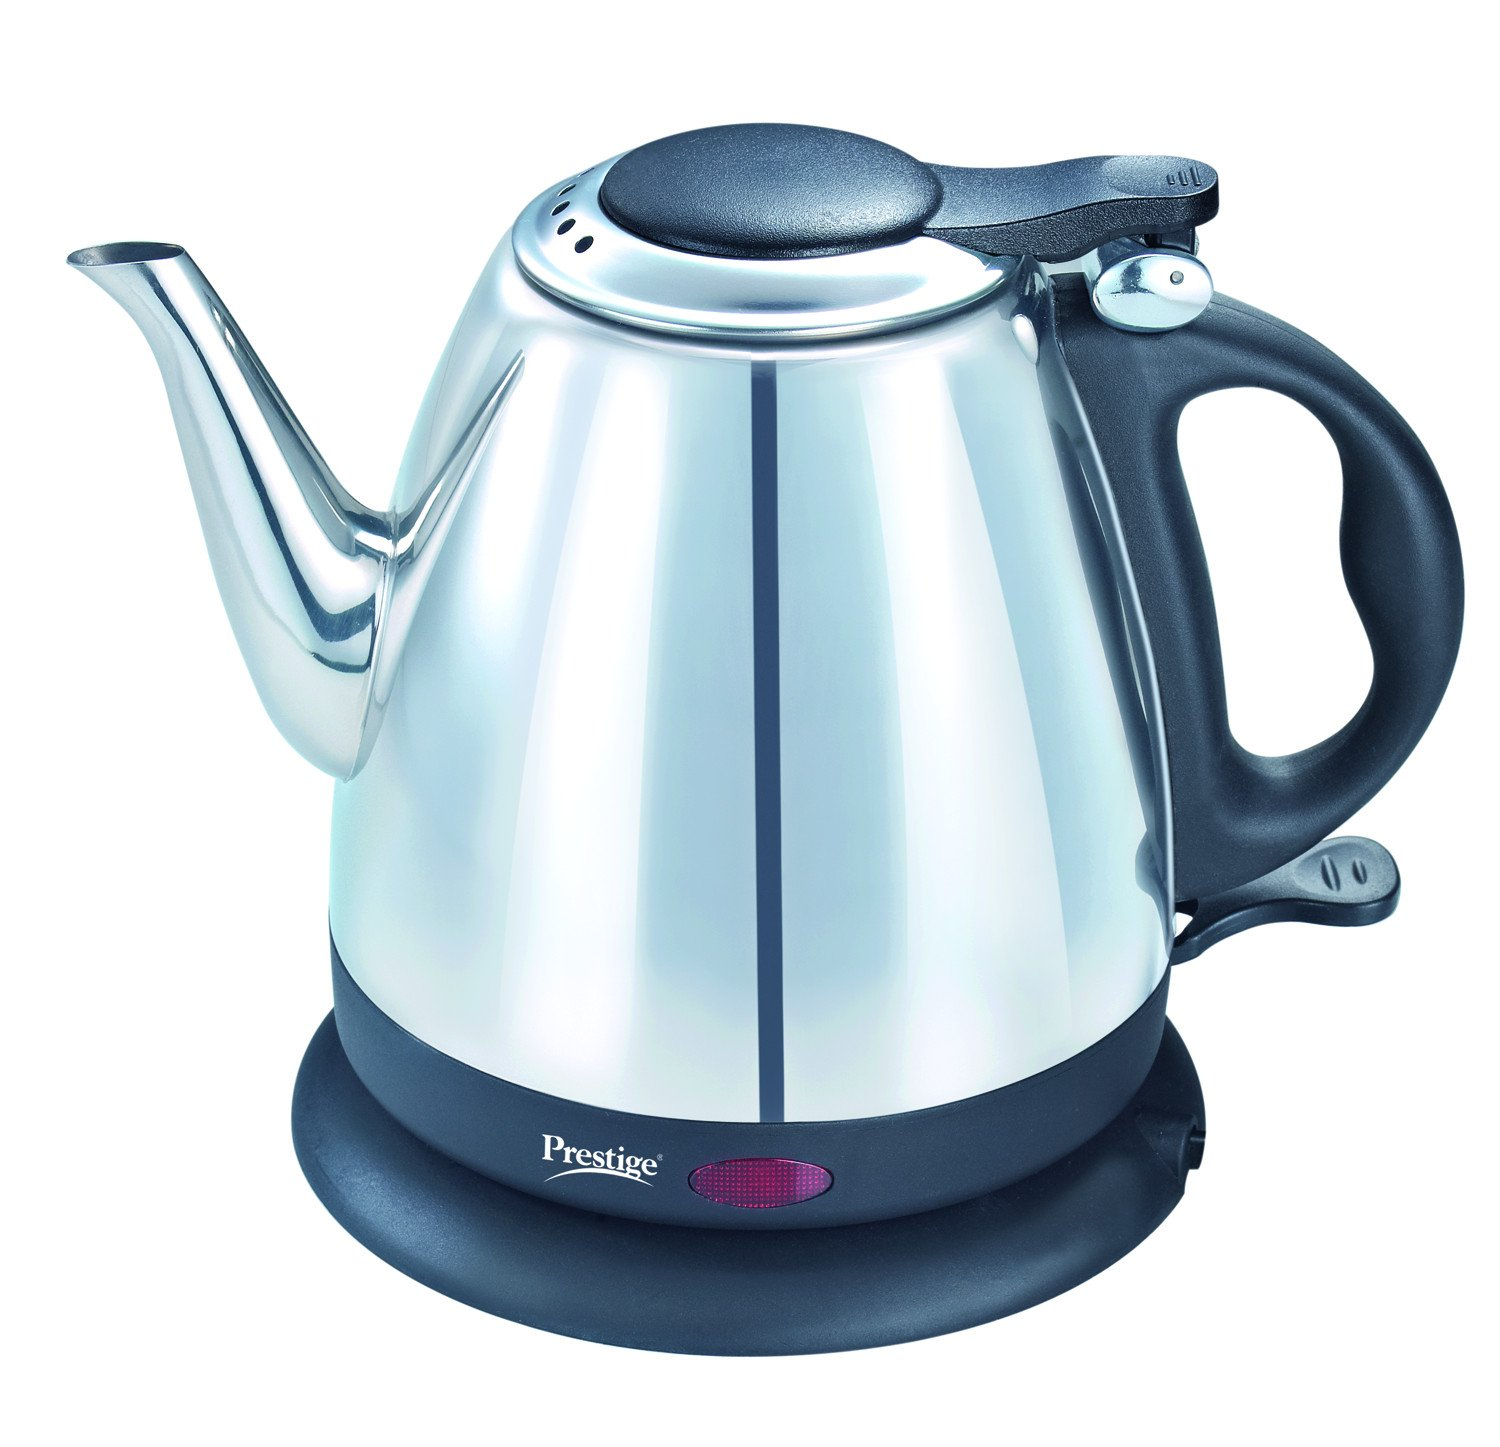 Prestige PKCSS 1.0 1200-Watt Electric Kettle